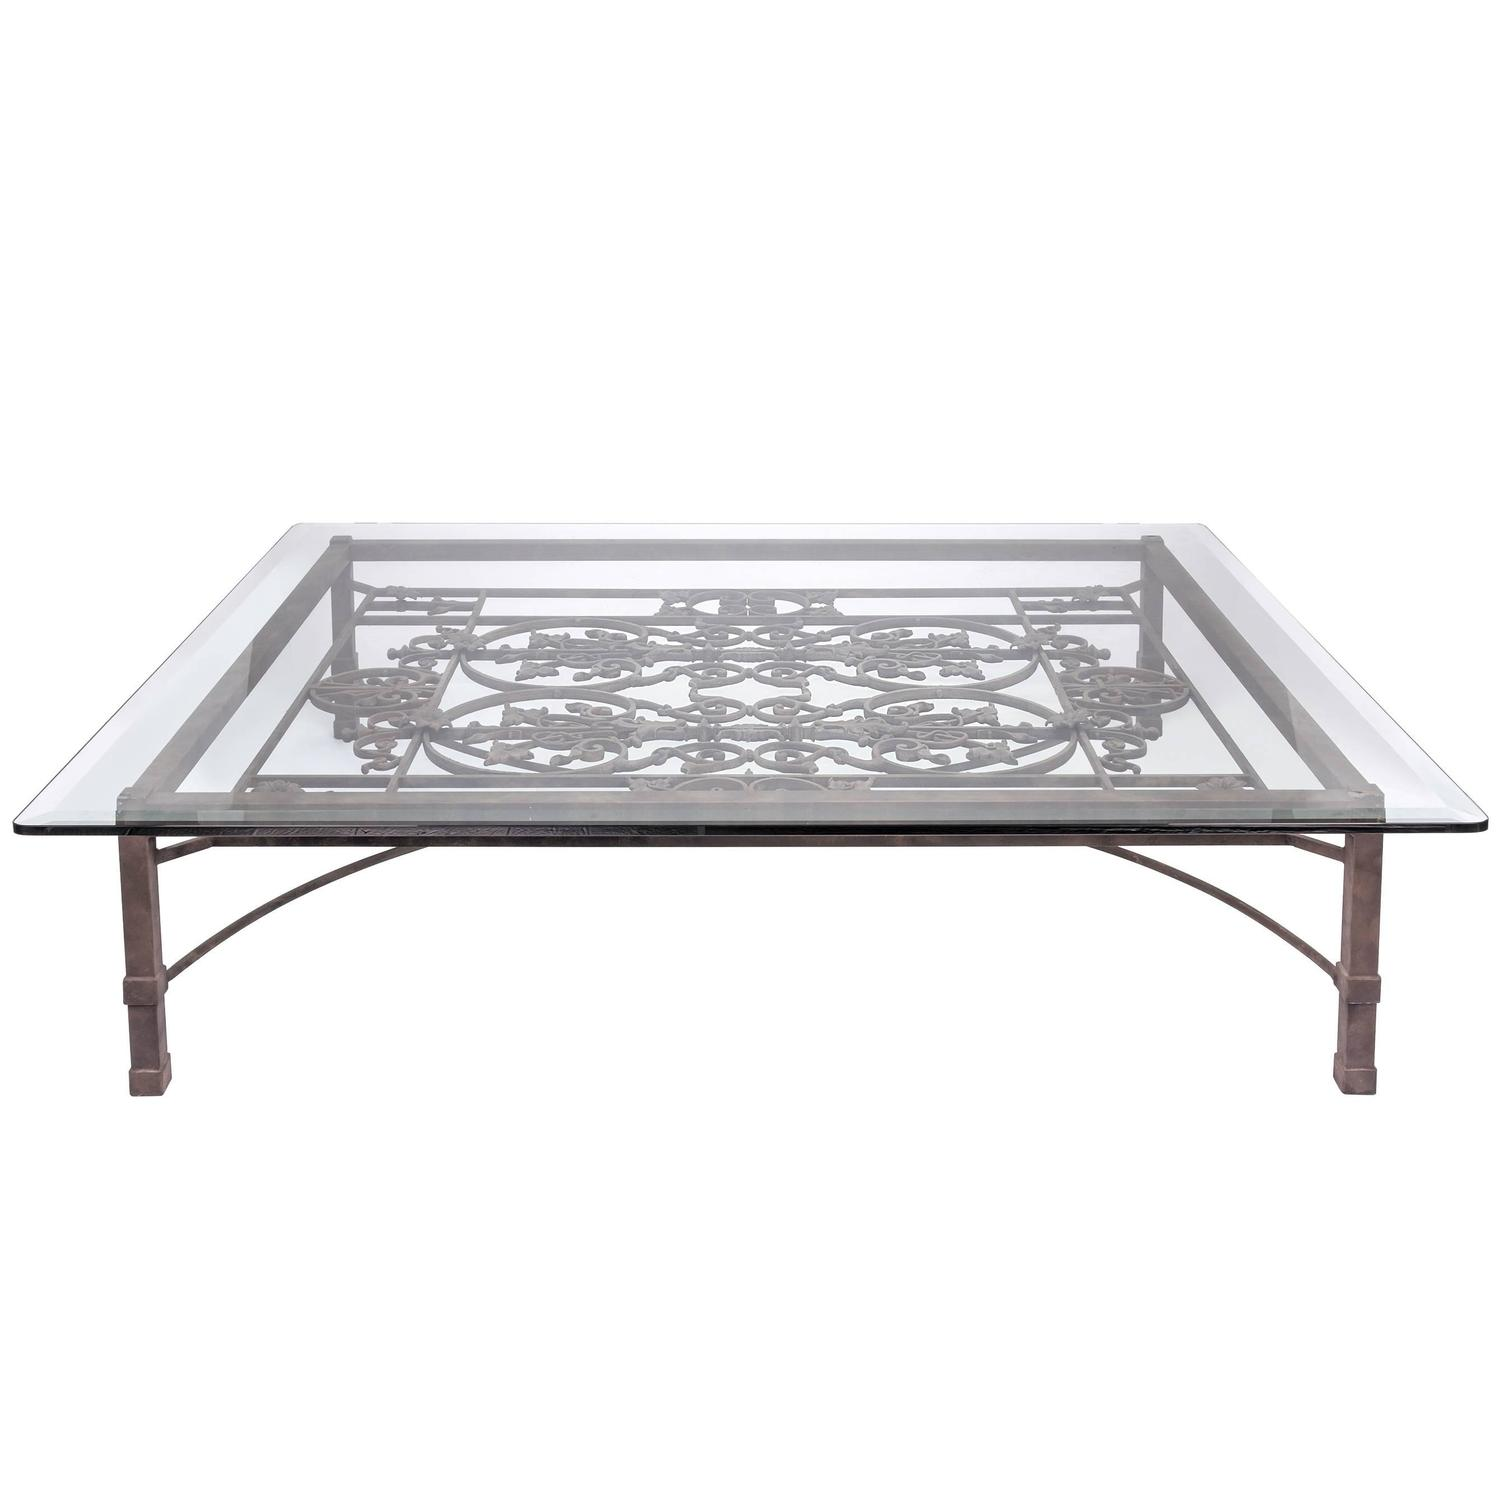 Large French Coffee Table: Large-Scale French Iron Coffee Table For Sale At 1stdibs